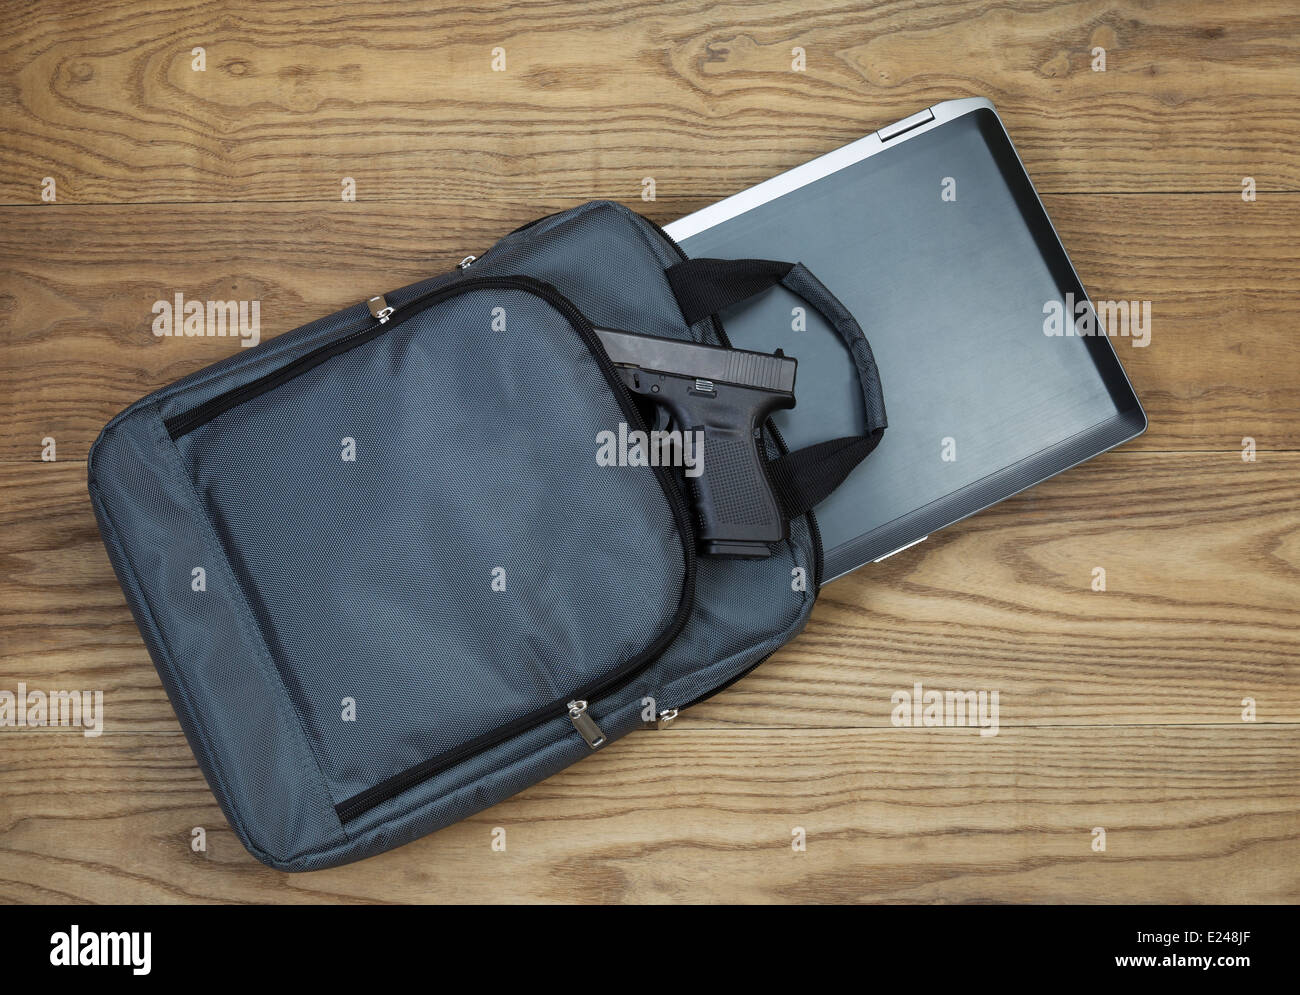 Overhead tilted view of laptop computer, personal weapon and carry case, on rustic wooden boards - Stock Image